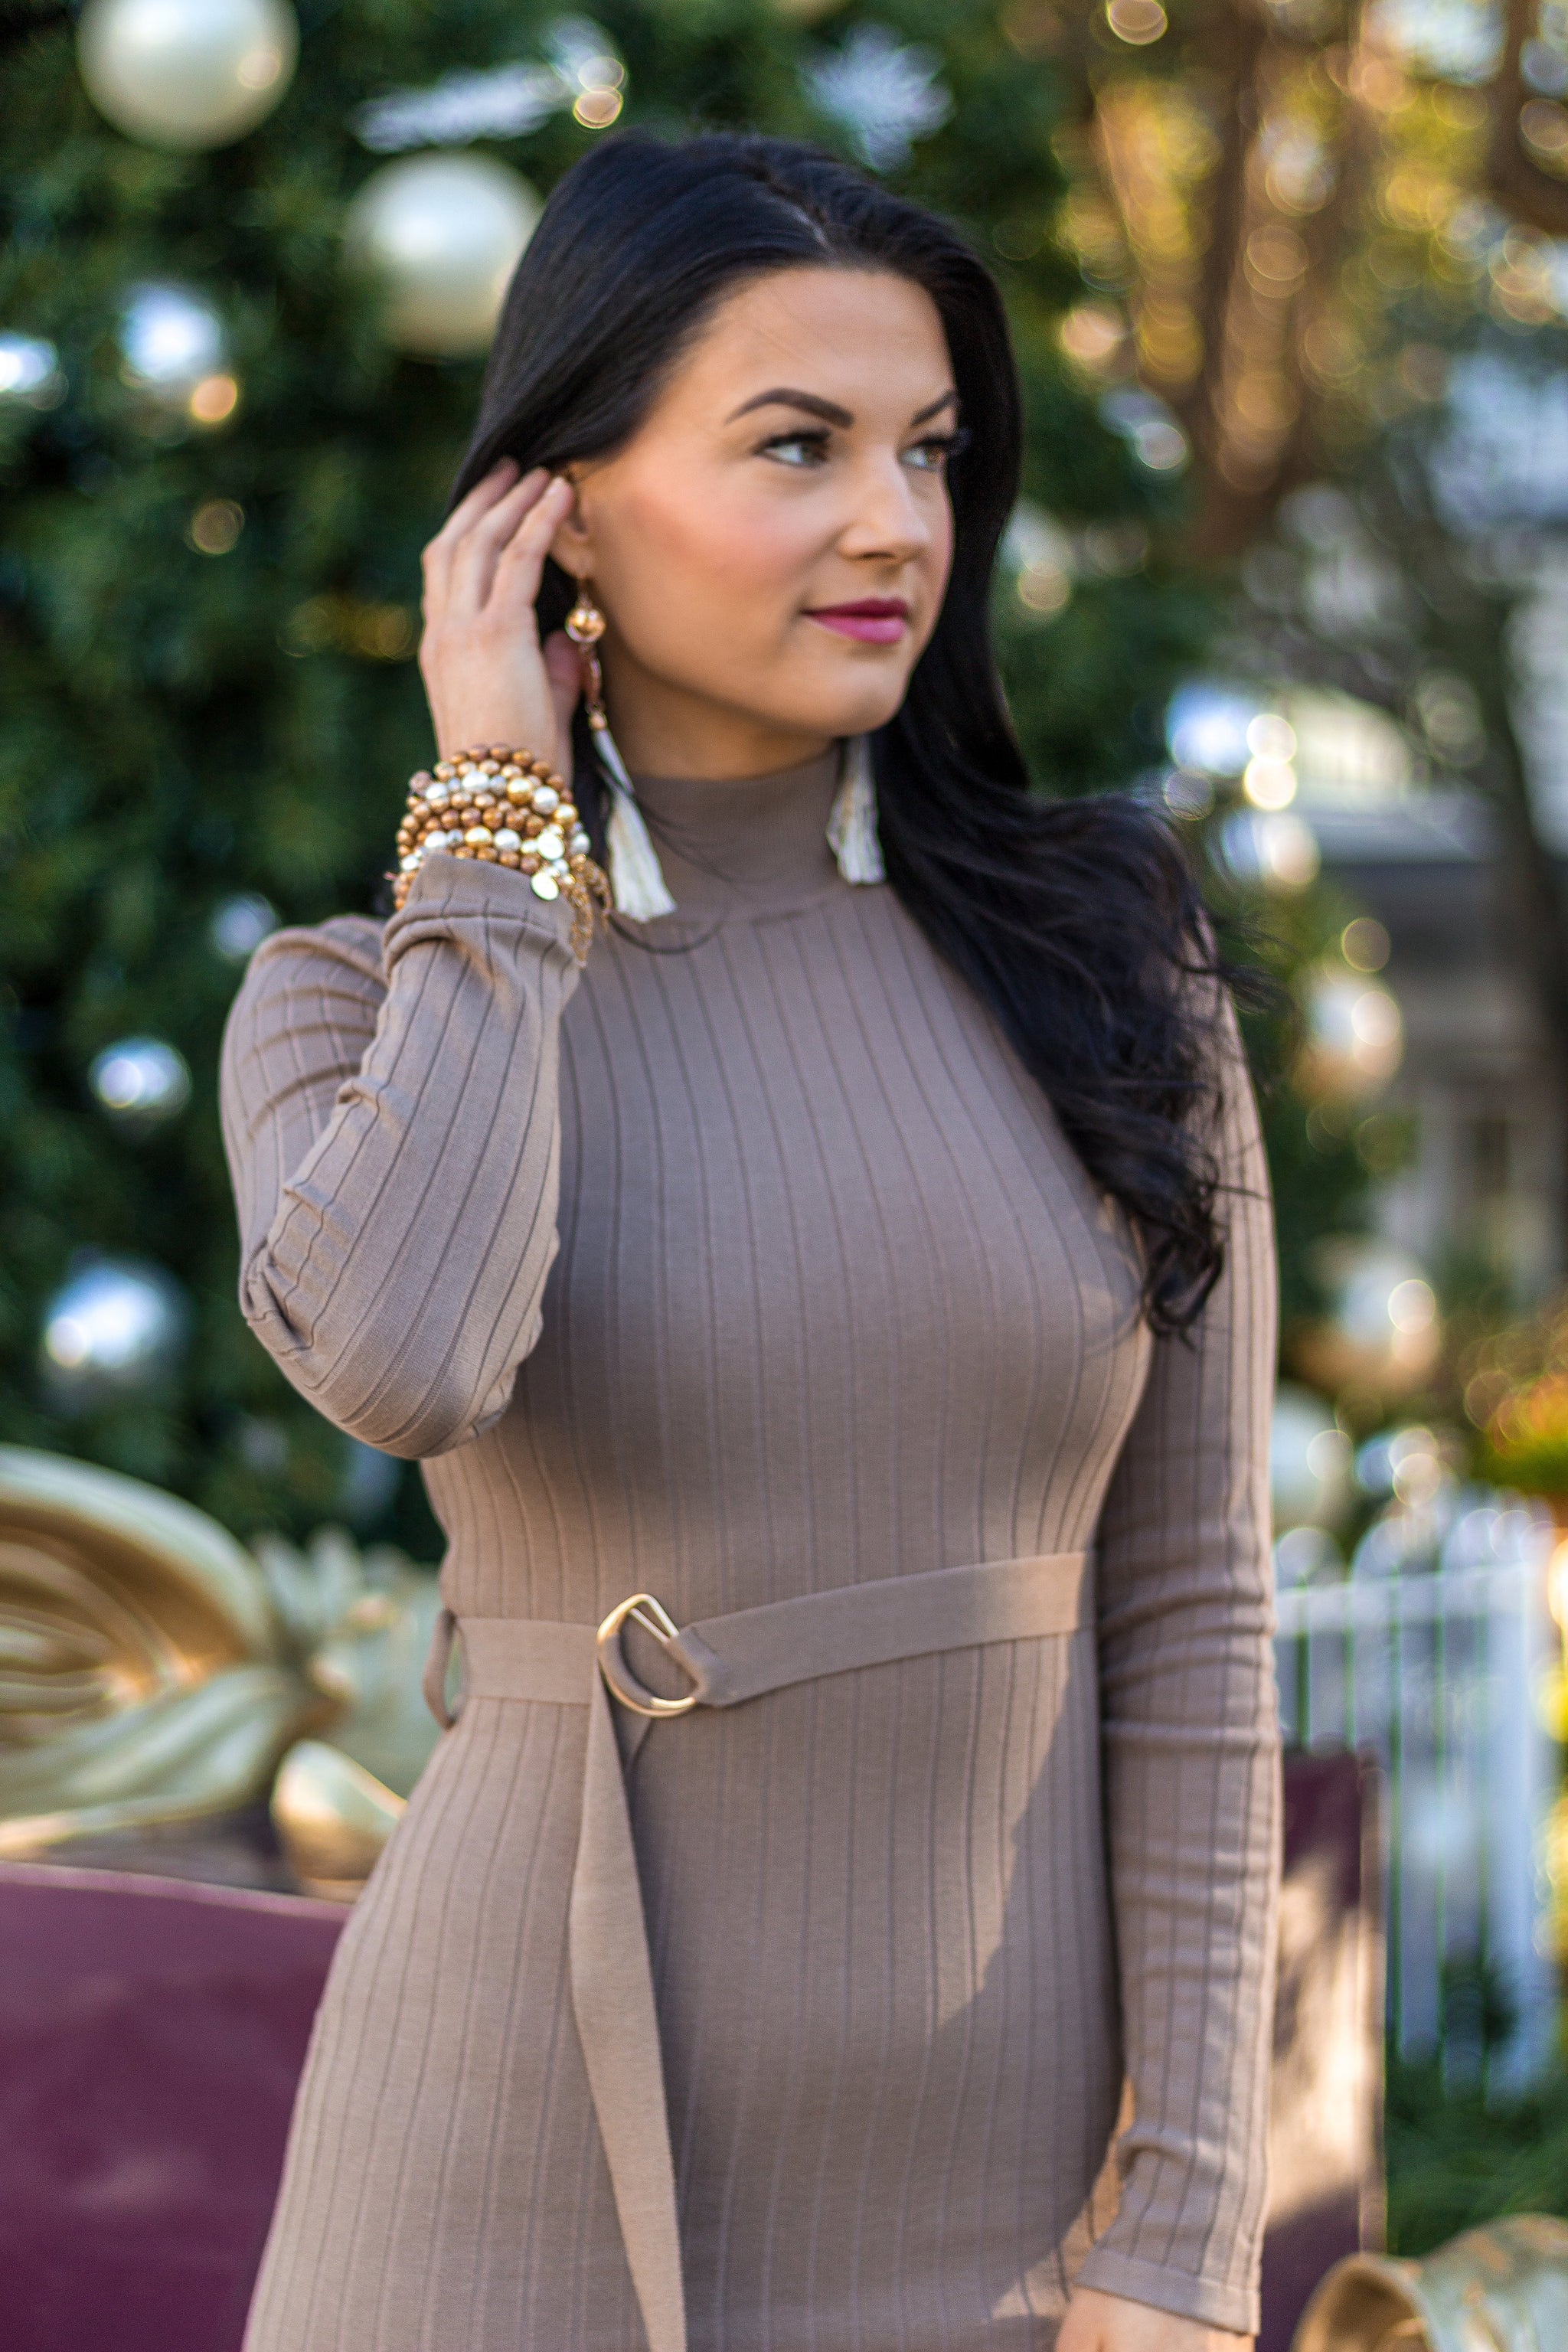 Long fitted sleeves attach to a banded high turtle neckline and leads to a fitted knit bodice and skirt silhouette that hugs your curves and hits below the knees at the calf.